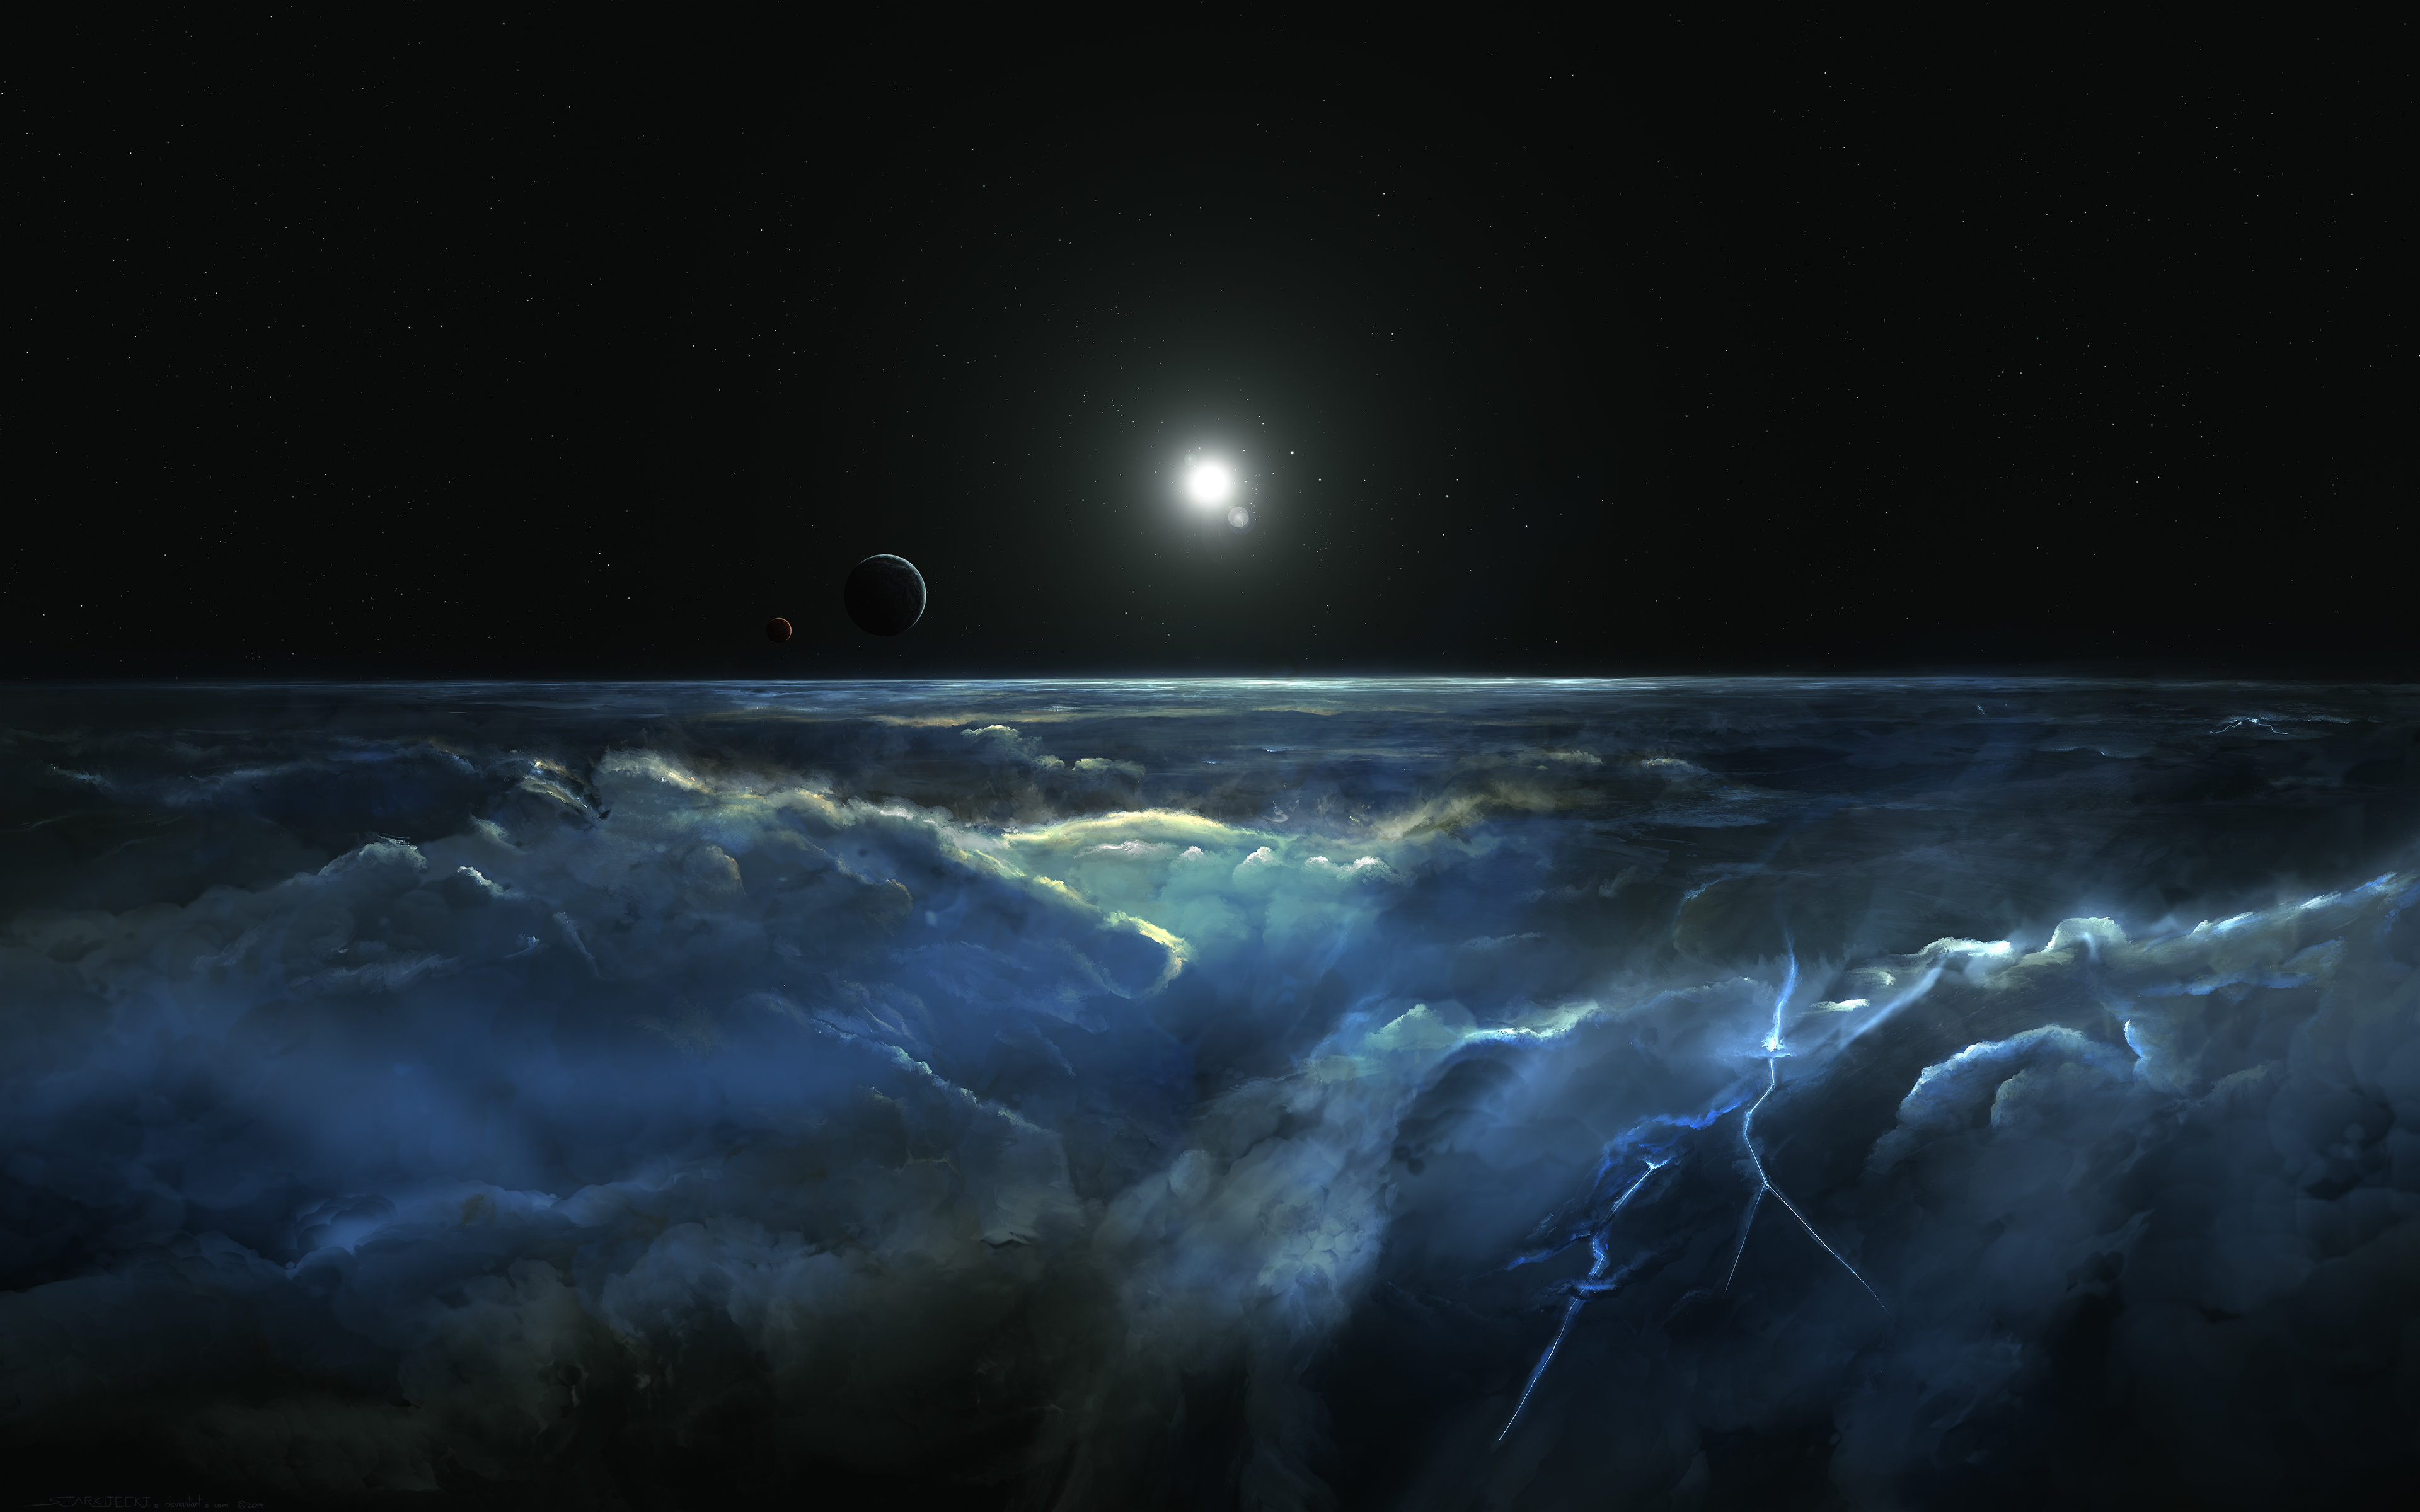 planetscape background hd 3840x2400 271576